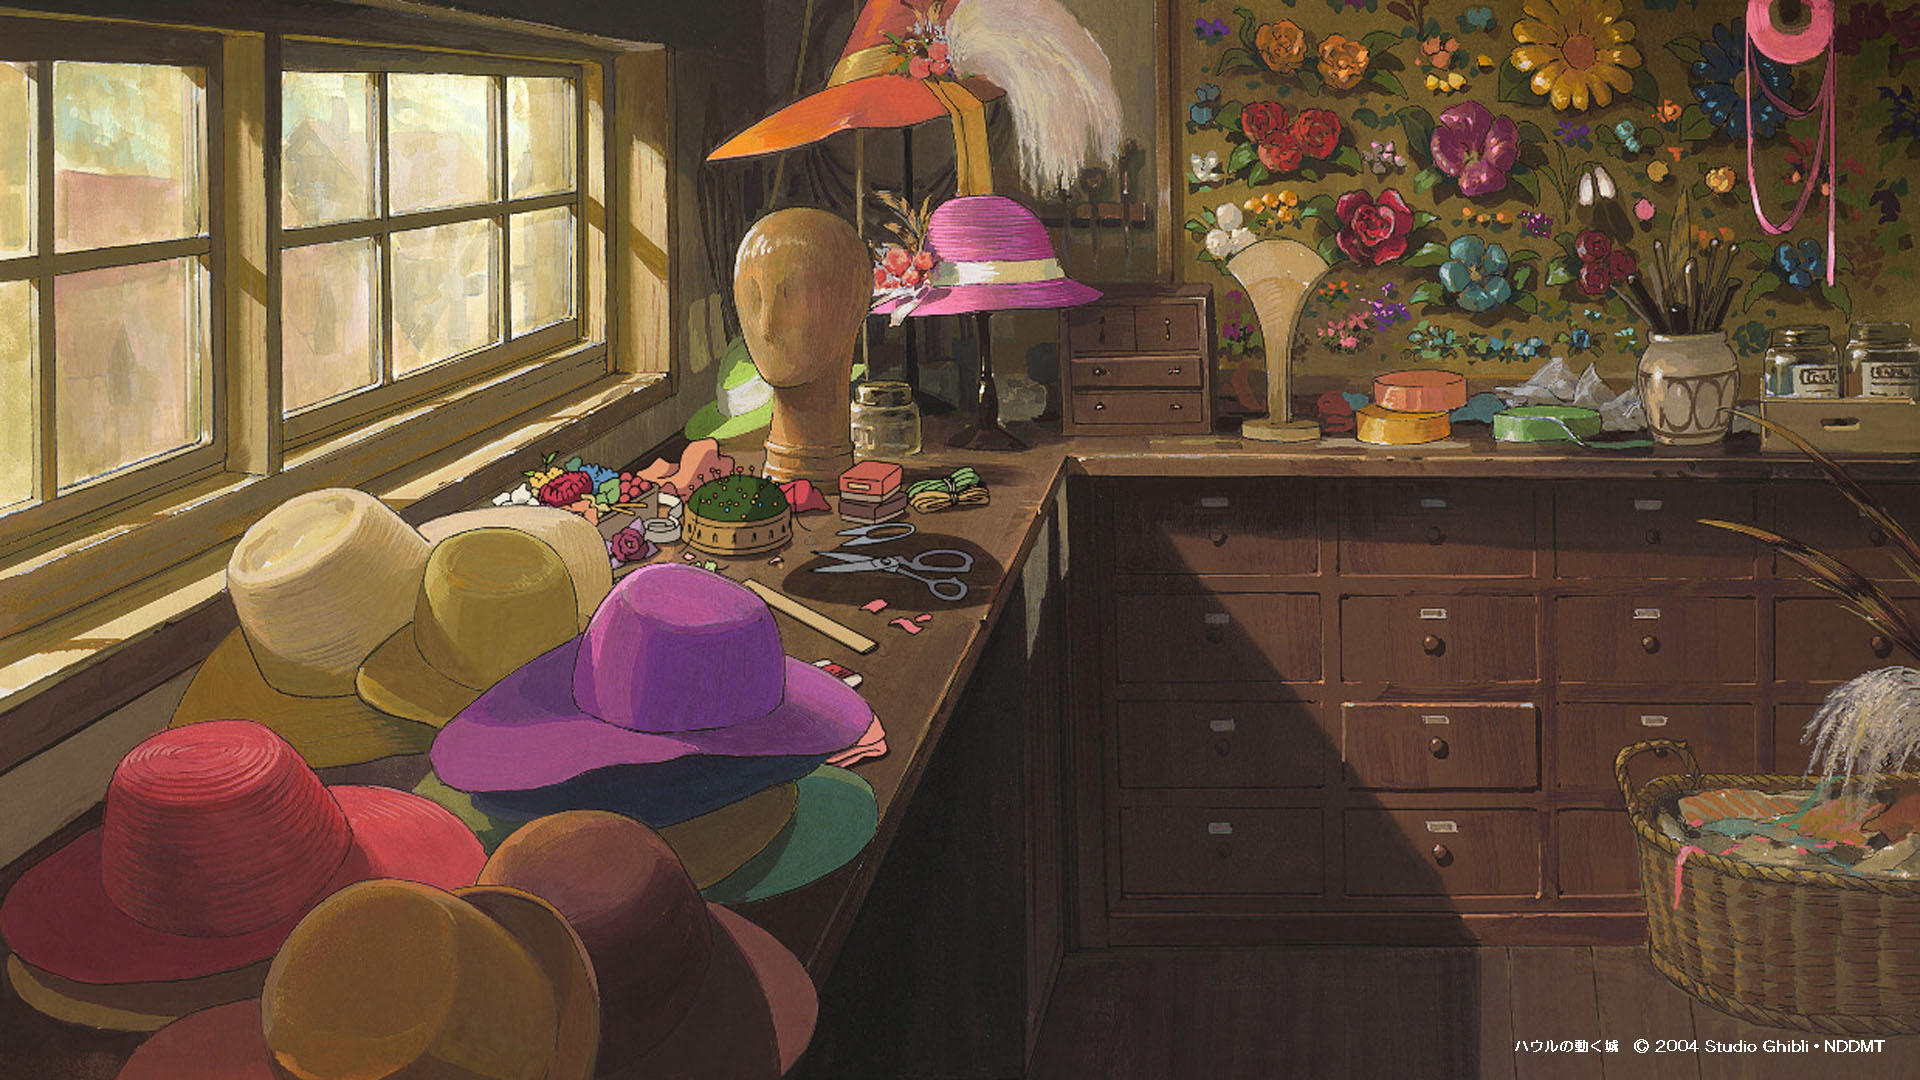 8 Studio Ghibli Anime Zoom Backgrounds That Will Take You To A